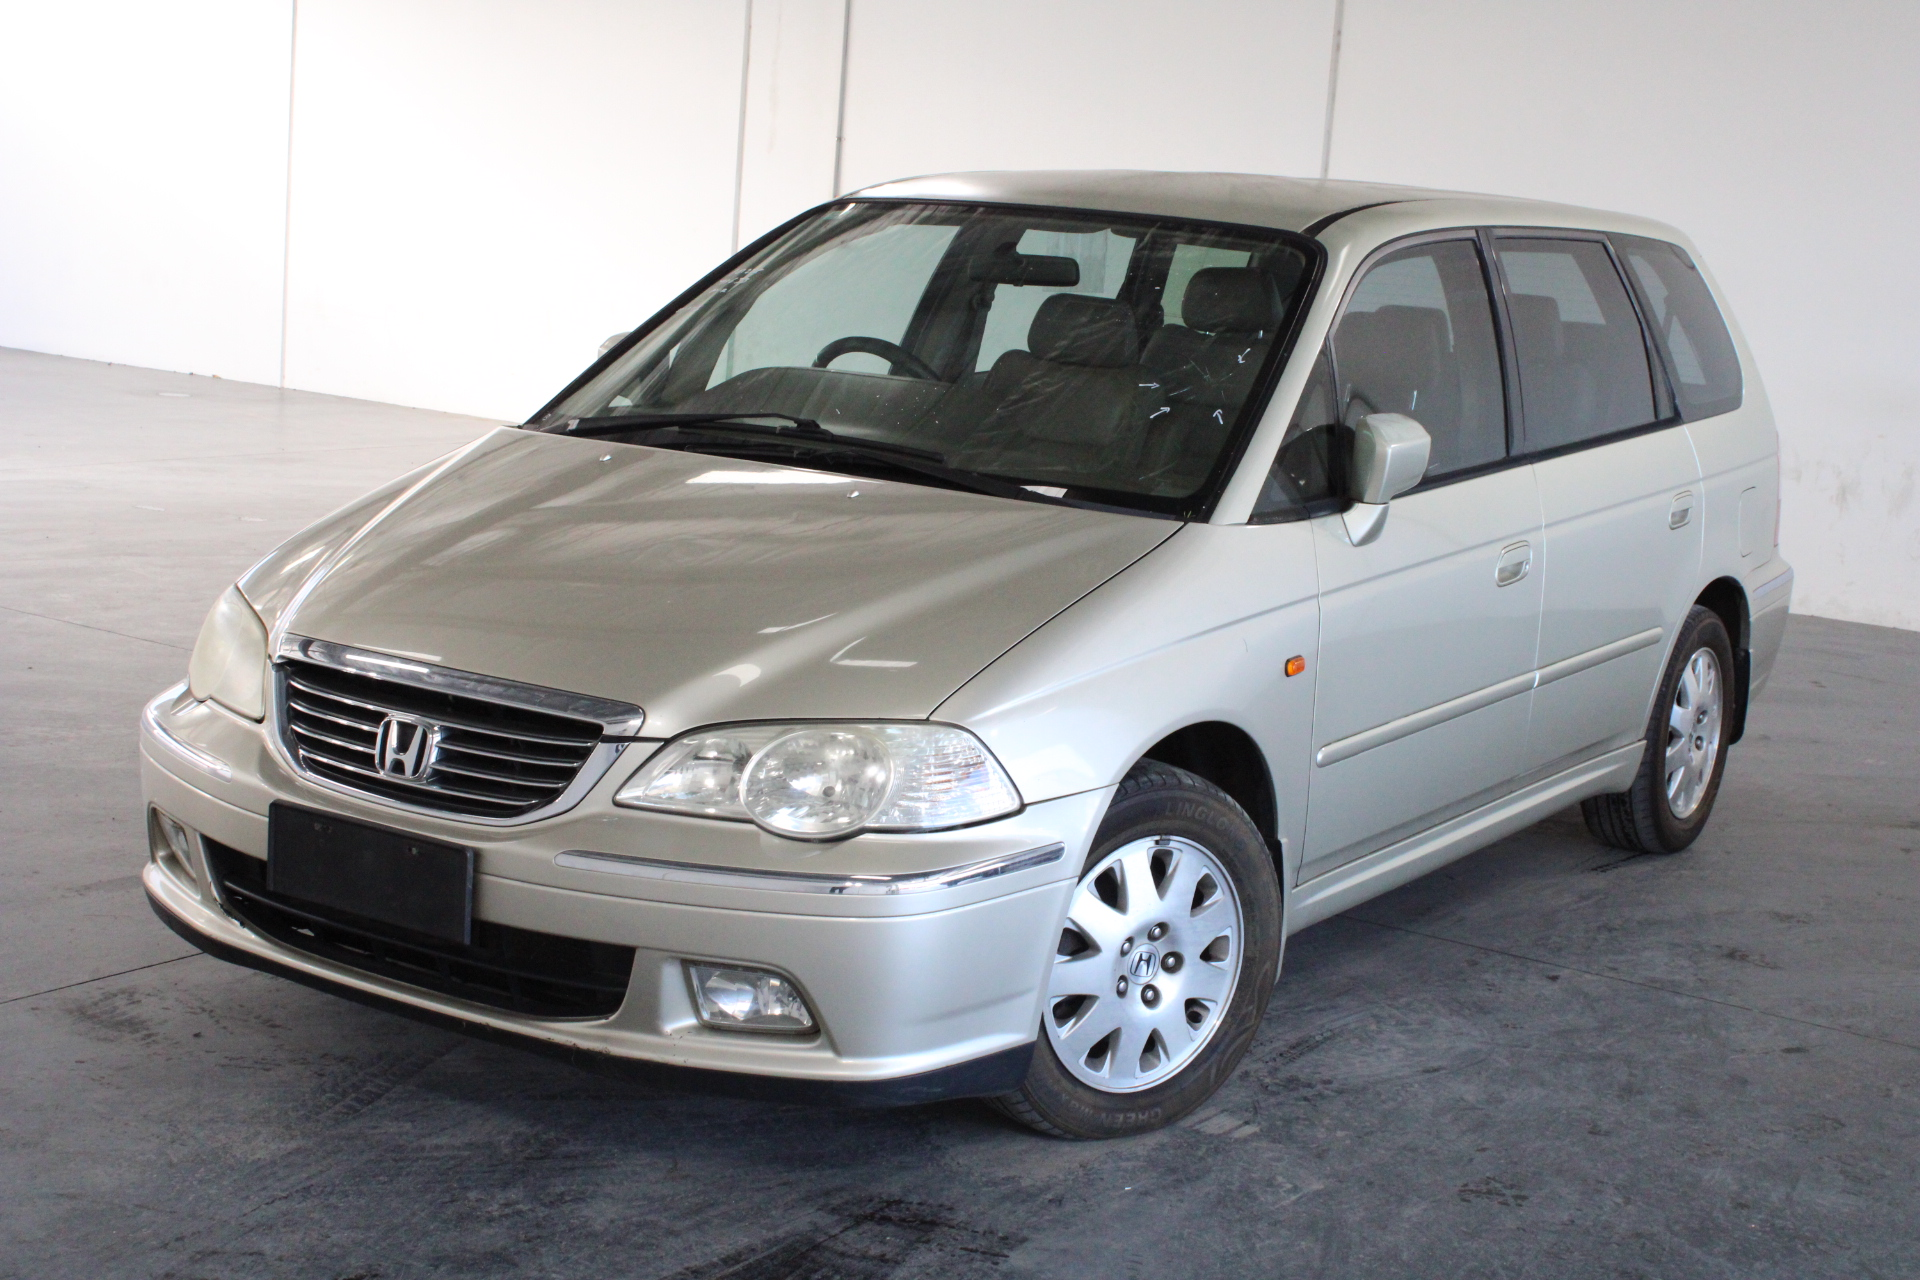 2002 Honda Odyssey V6L (6 SEAT) Automatic People Mover